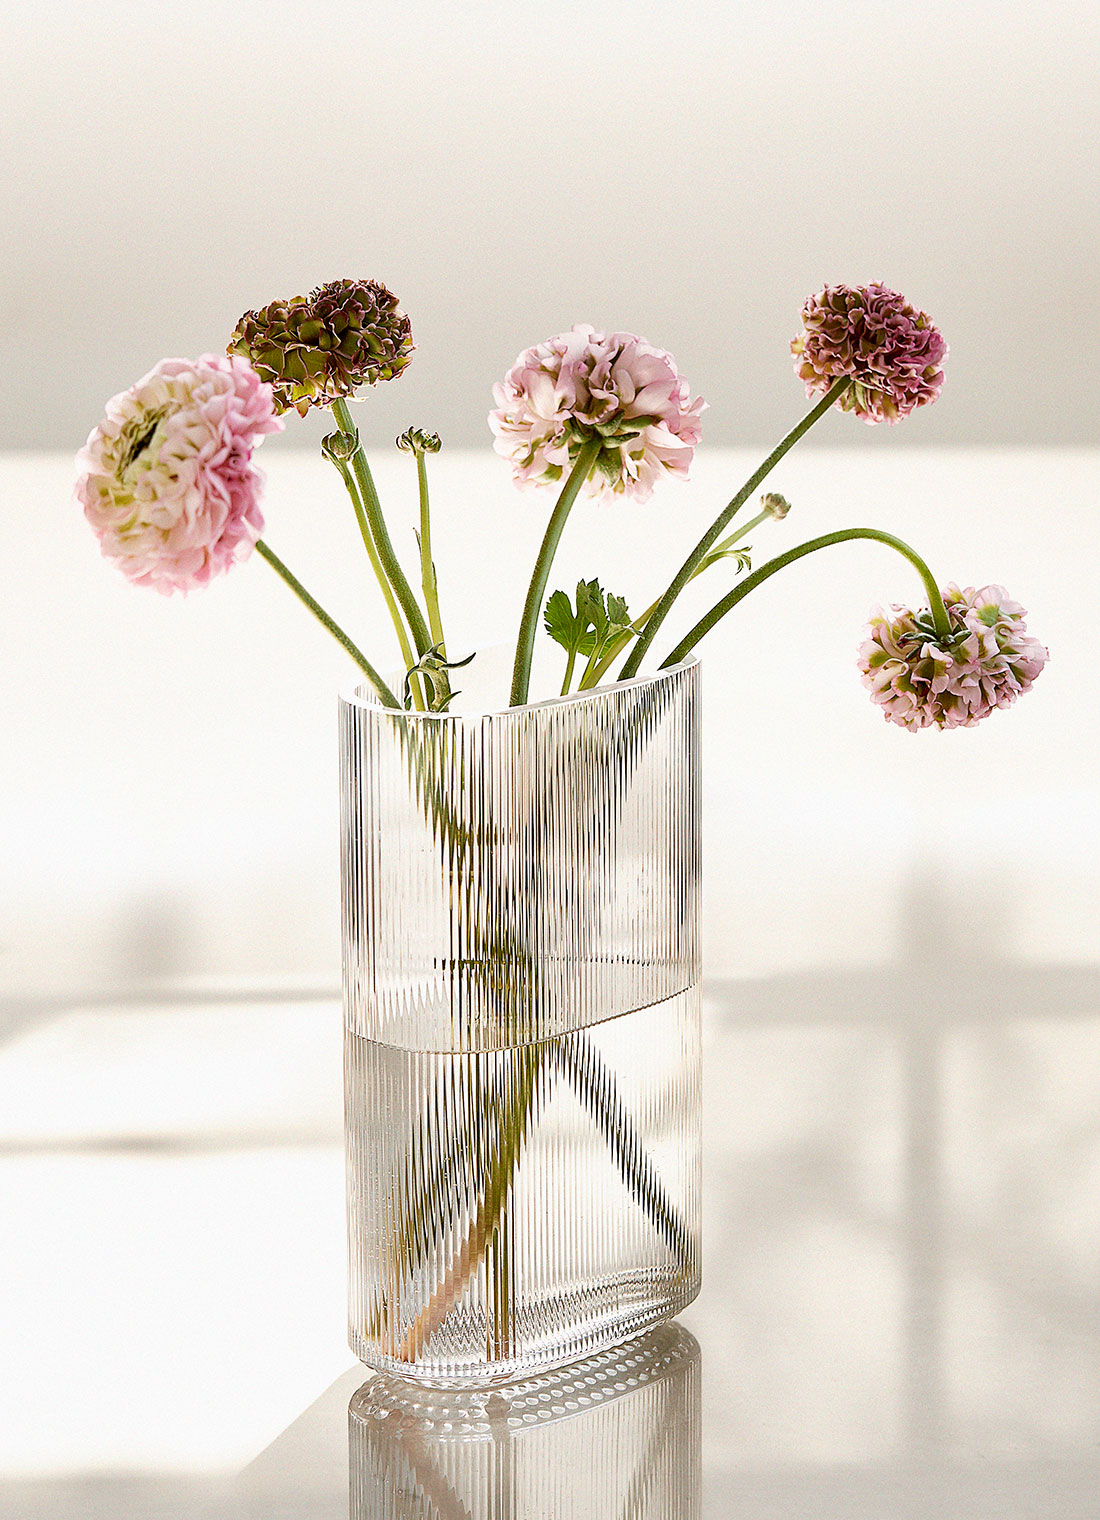 Arctic vase with flowers